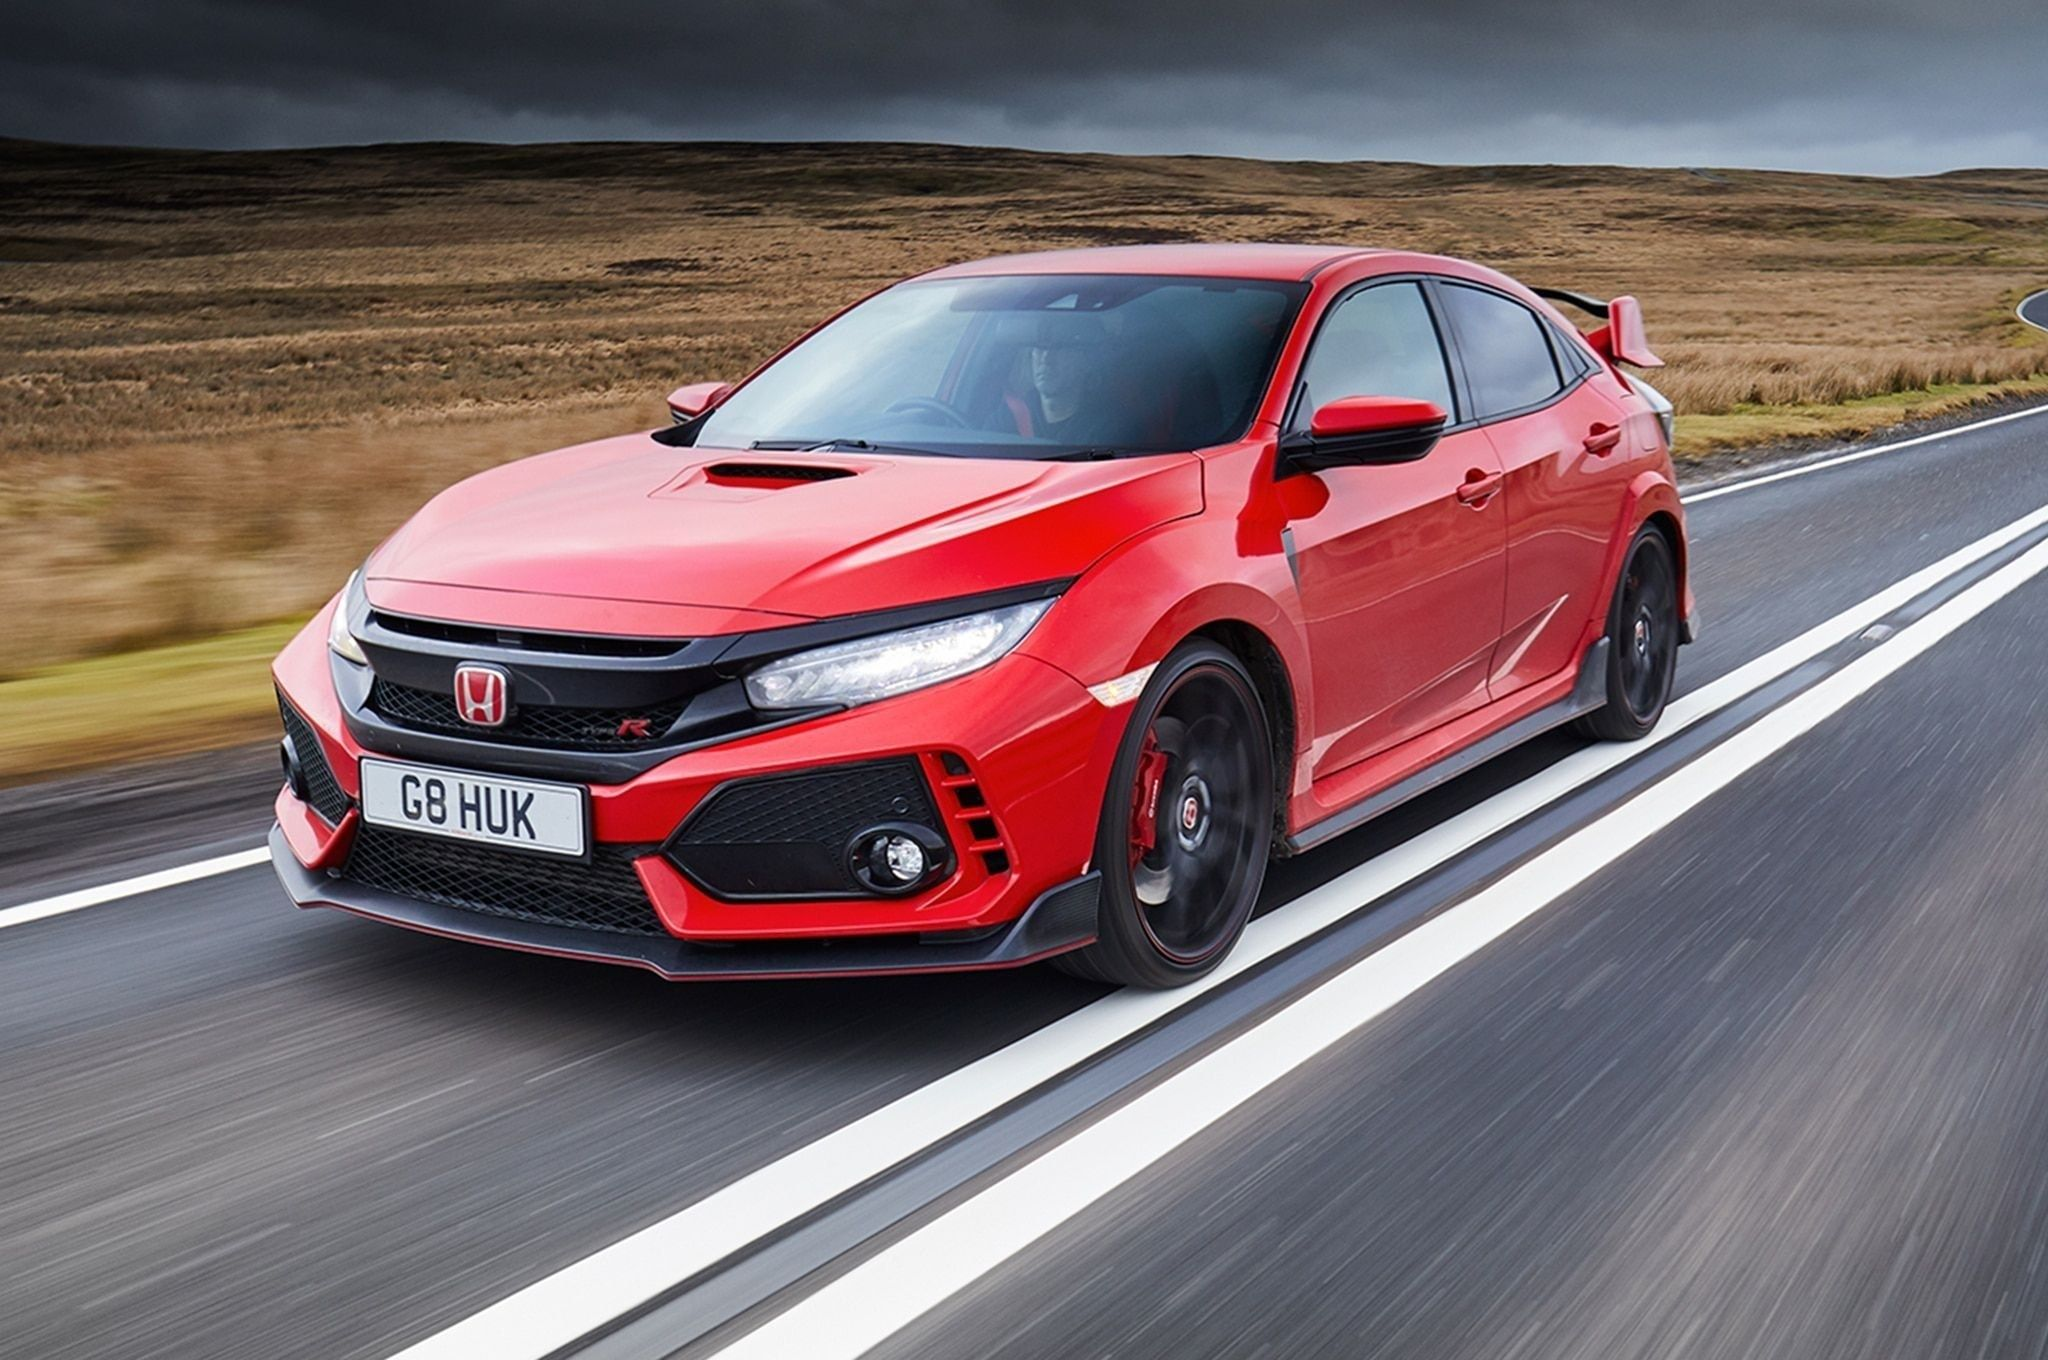 New 2020 Honda Accord Type R Specs And Review Marcusmcfly Concept Redesign And Review Honda Civic Si Honda Civic Honda Civic Si Coupe